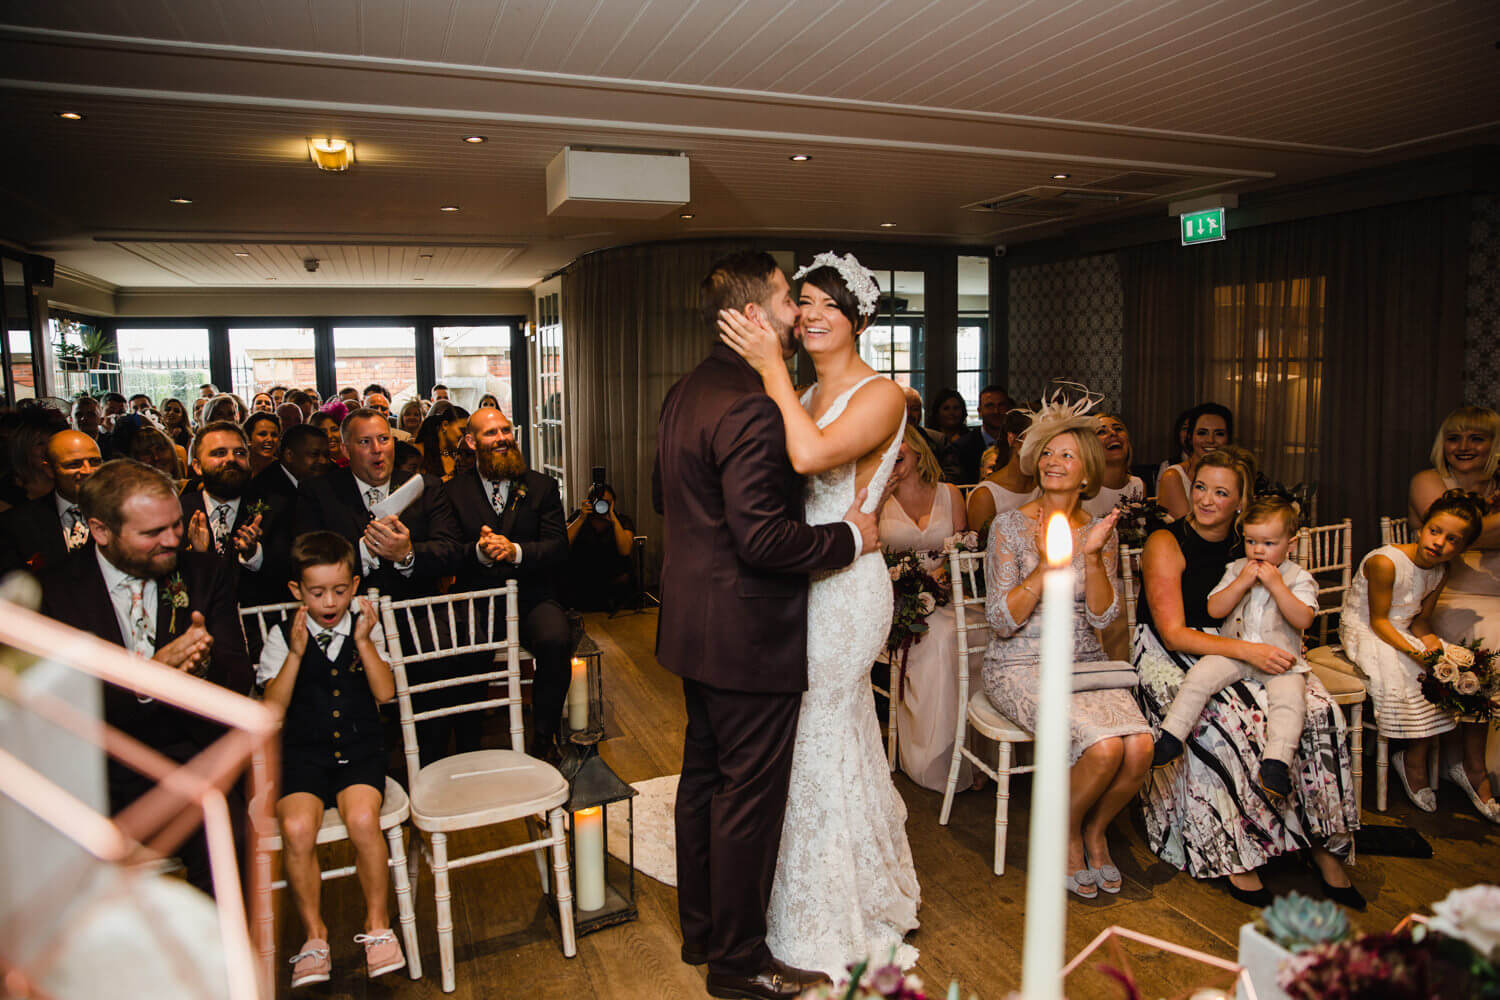 newlyweds share first kiss while being congratulated by wedding party at great john street hotel